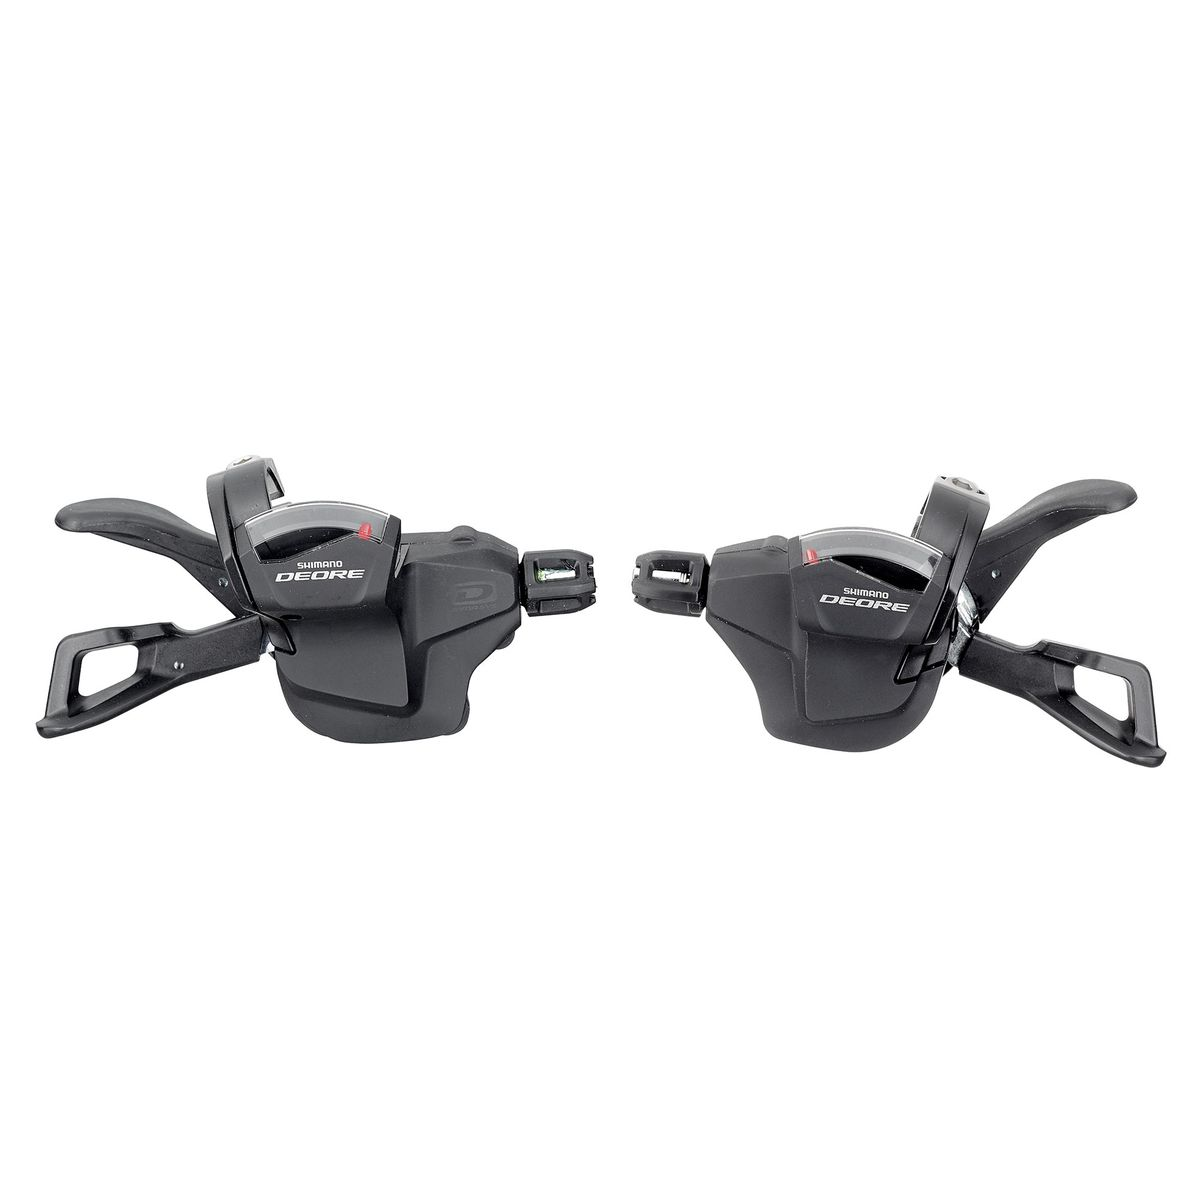 Deore SL-M6000 10-speed Rapidfire shifters